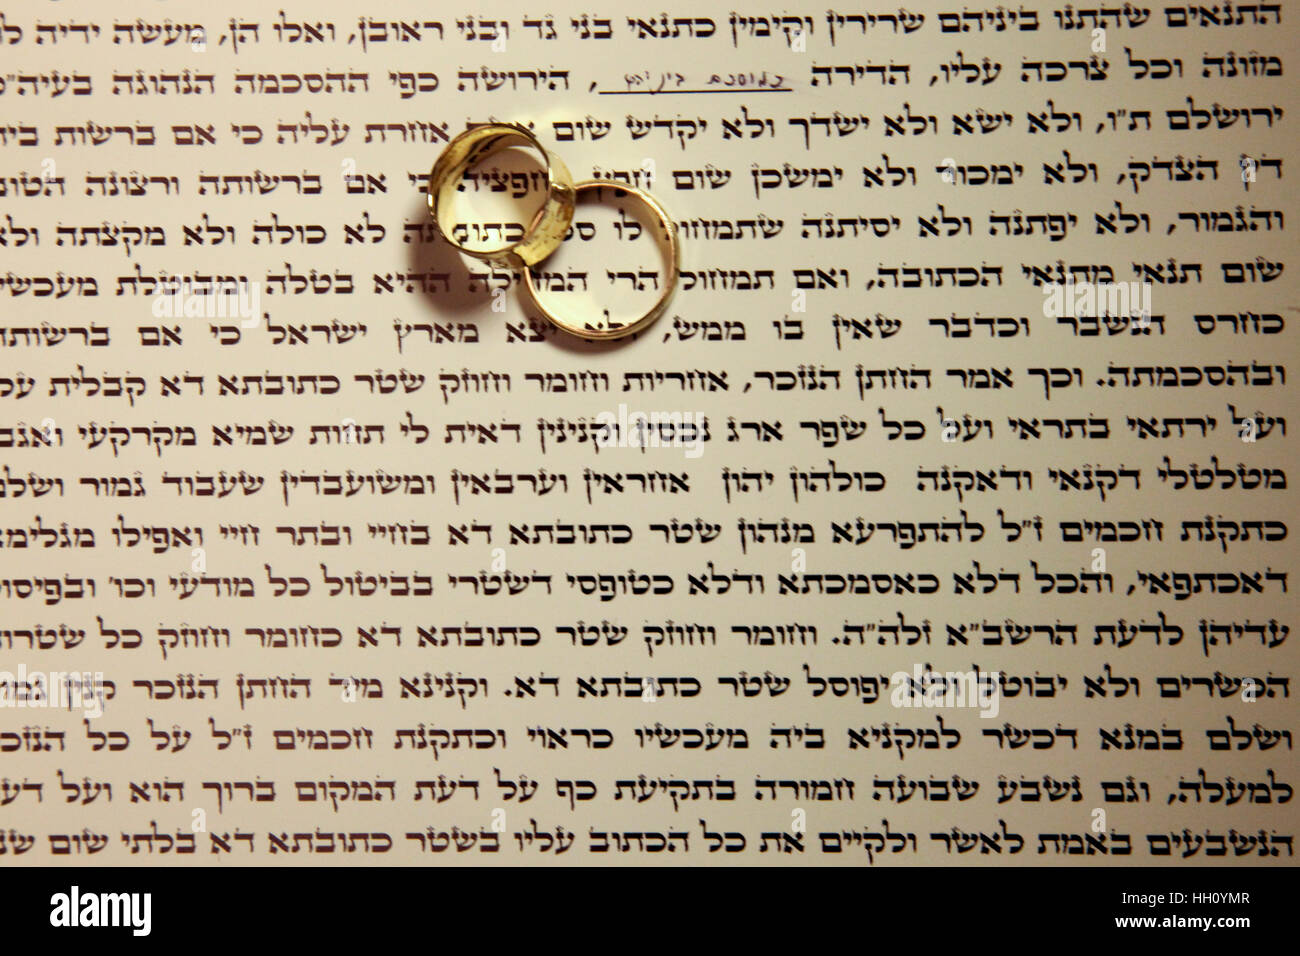 Jewish wedding ceremony The ketubah (prenuptial agreement) and wedding rings - Stock Image